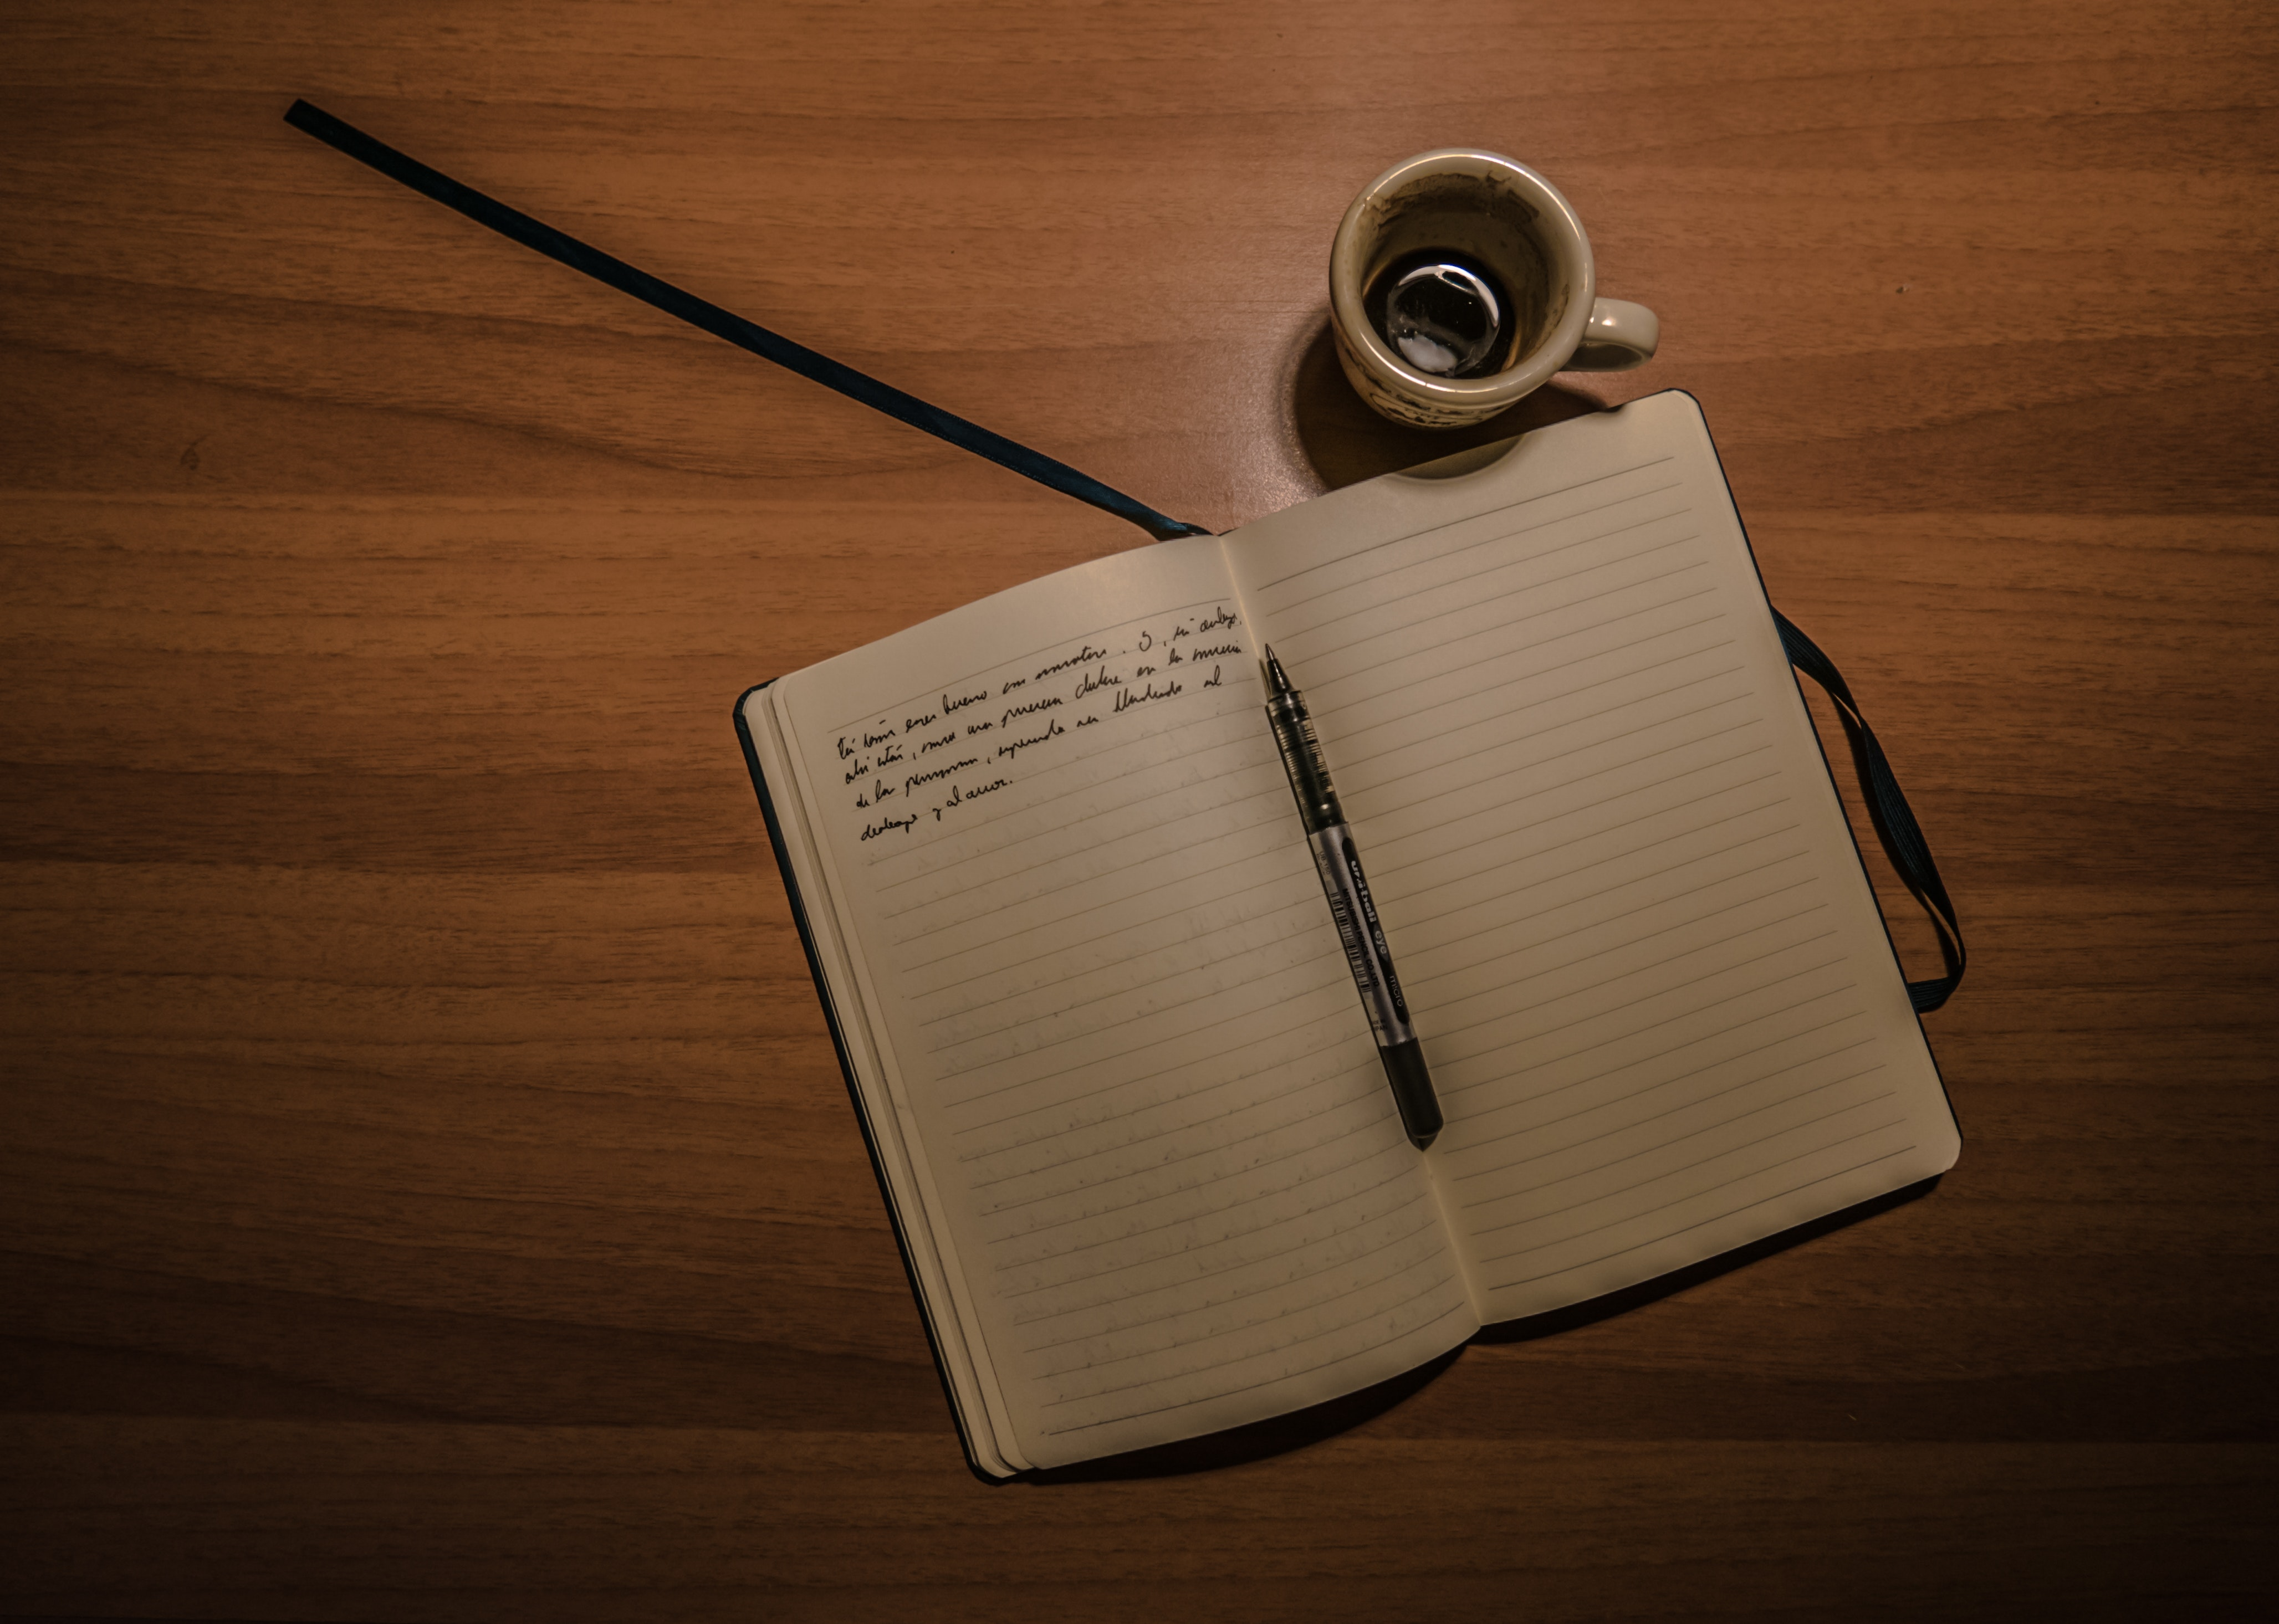 Pen on Notebook Beside a Teacup on Brown Wooden Plank, Beverage, Wooden table, Wood, Table, HQ Photo